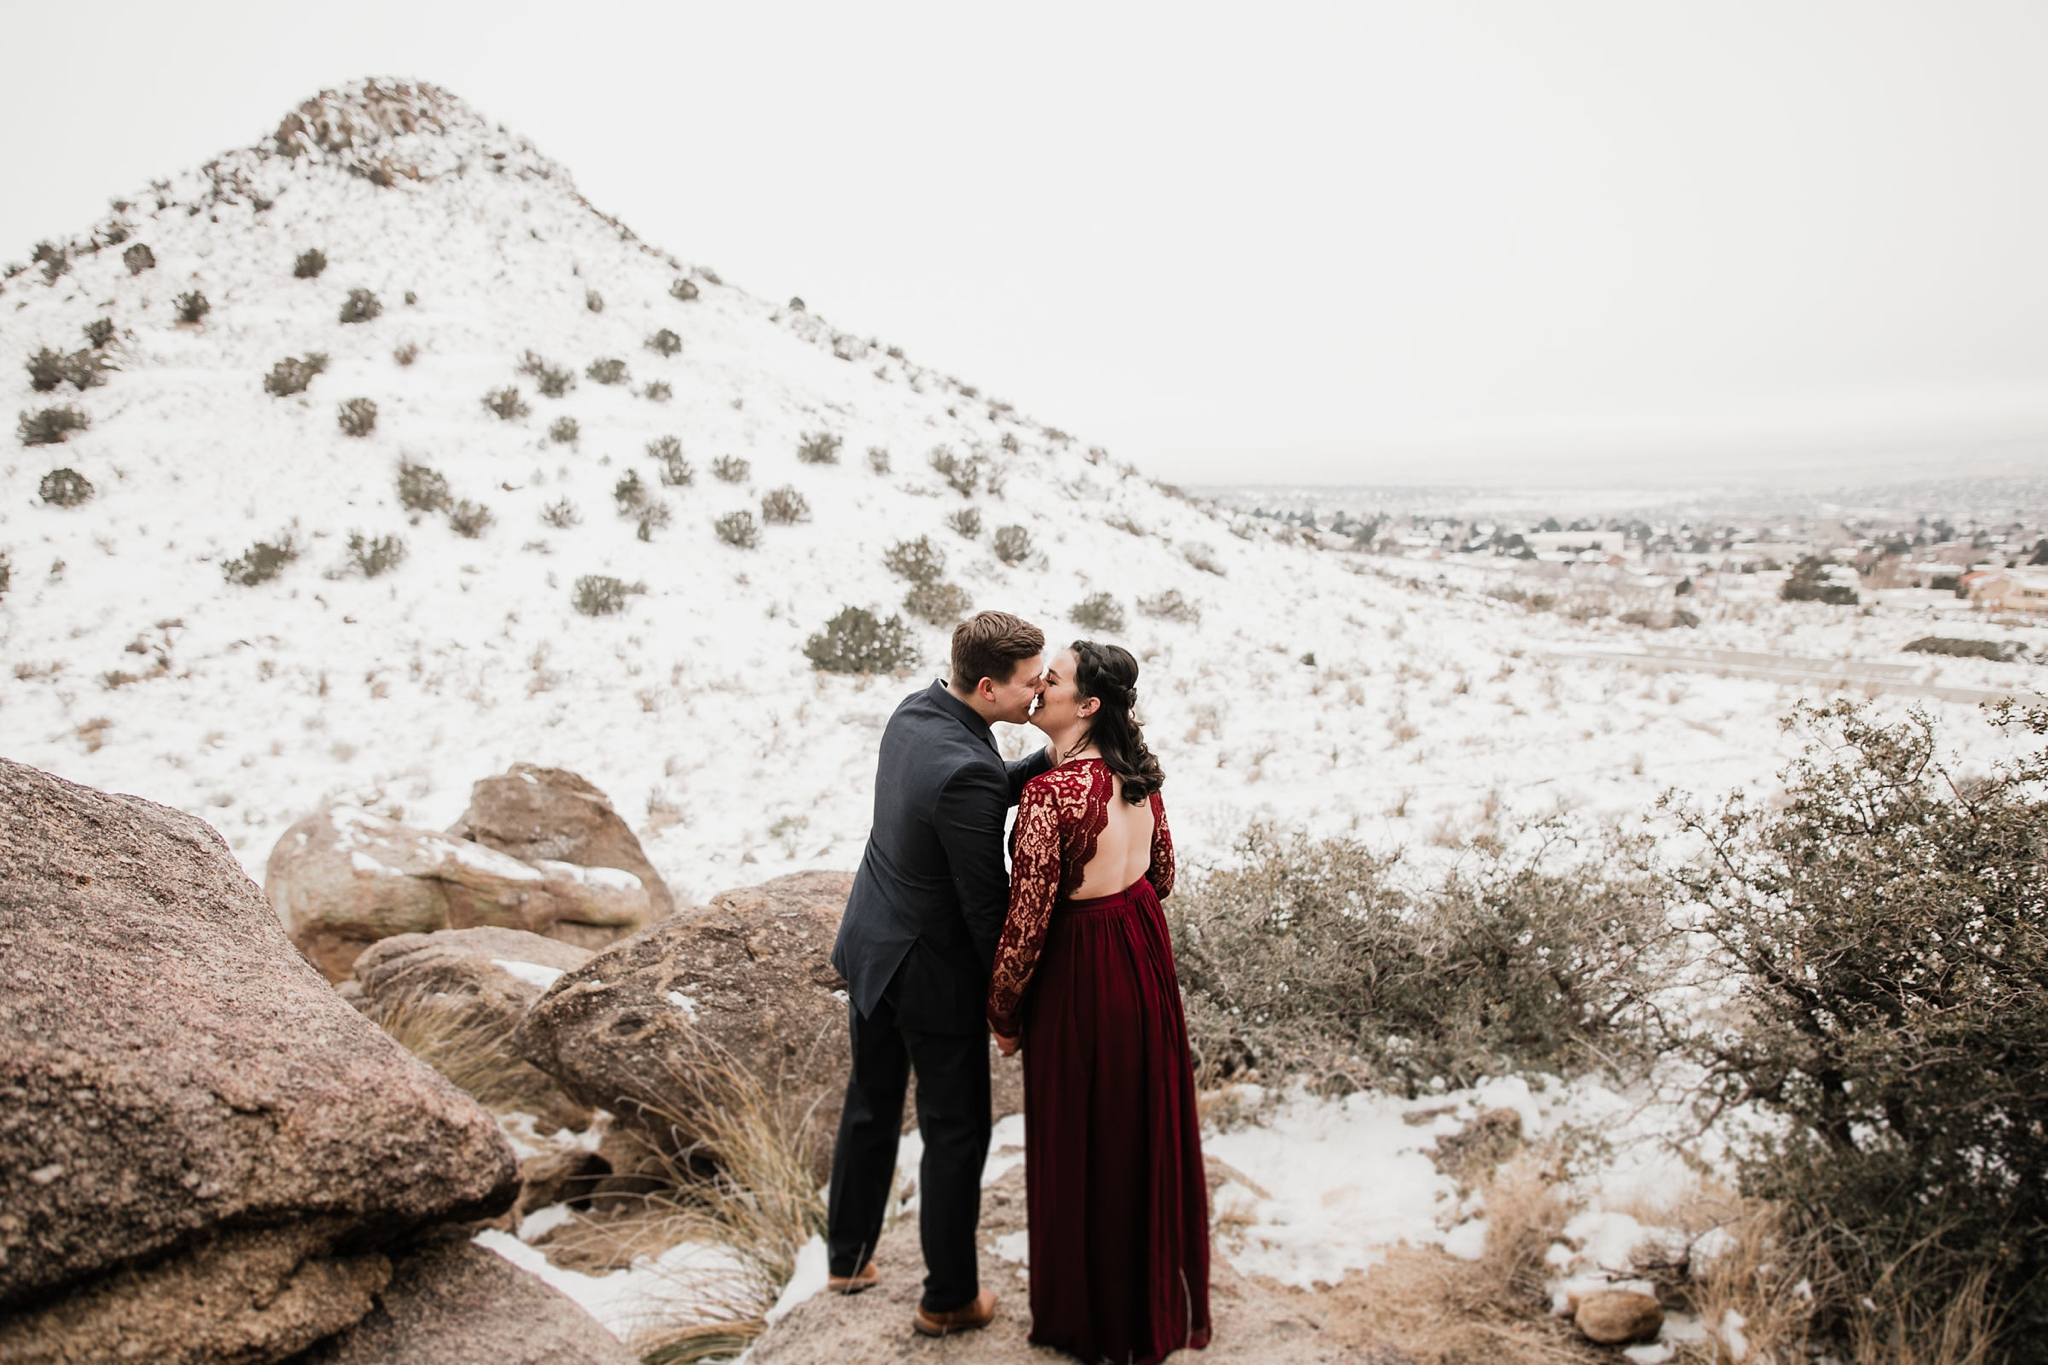 Alicia+lucia+photography+-+albuquerque+wedding+photographer+-+santa+fe+wedding+photography+-+new+mexico+wedding+photographer+-+new+mexico+wedding+-+engagement+-+albuquerque+engagement+-+winter+engagement+-+hyatt+tamaya+wedding_0009.jpg